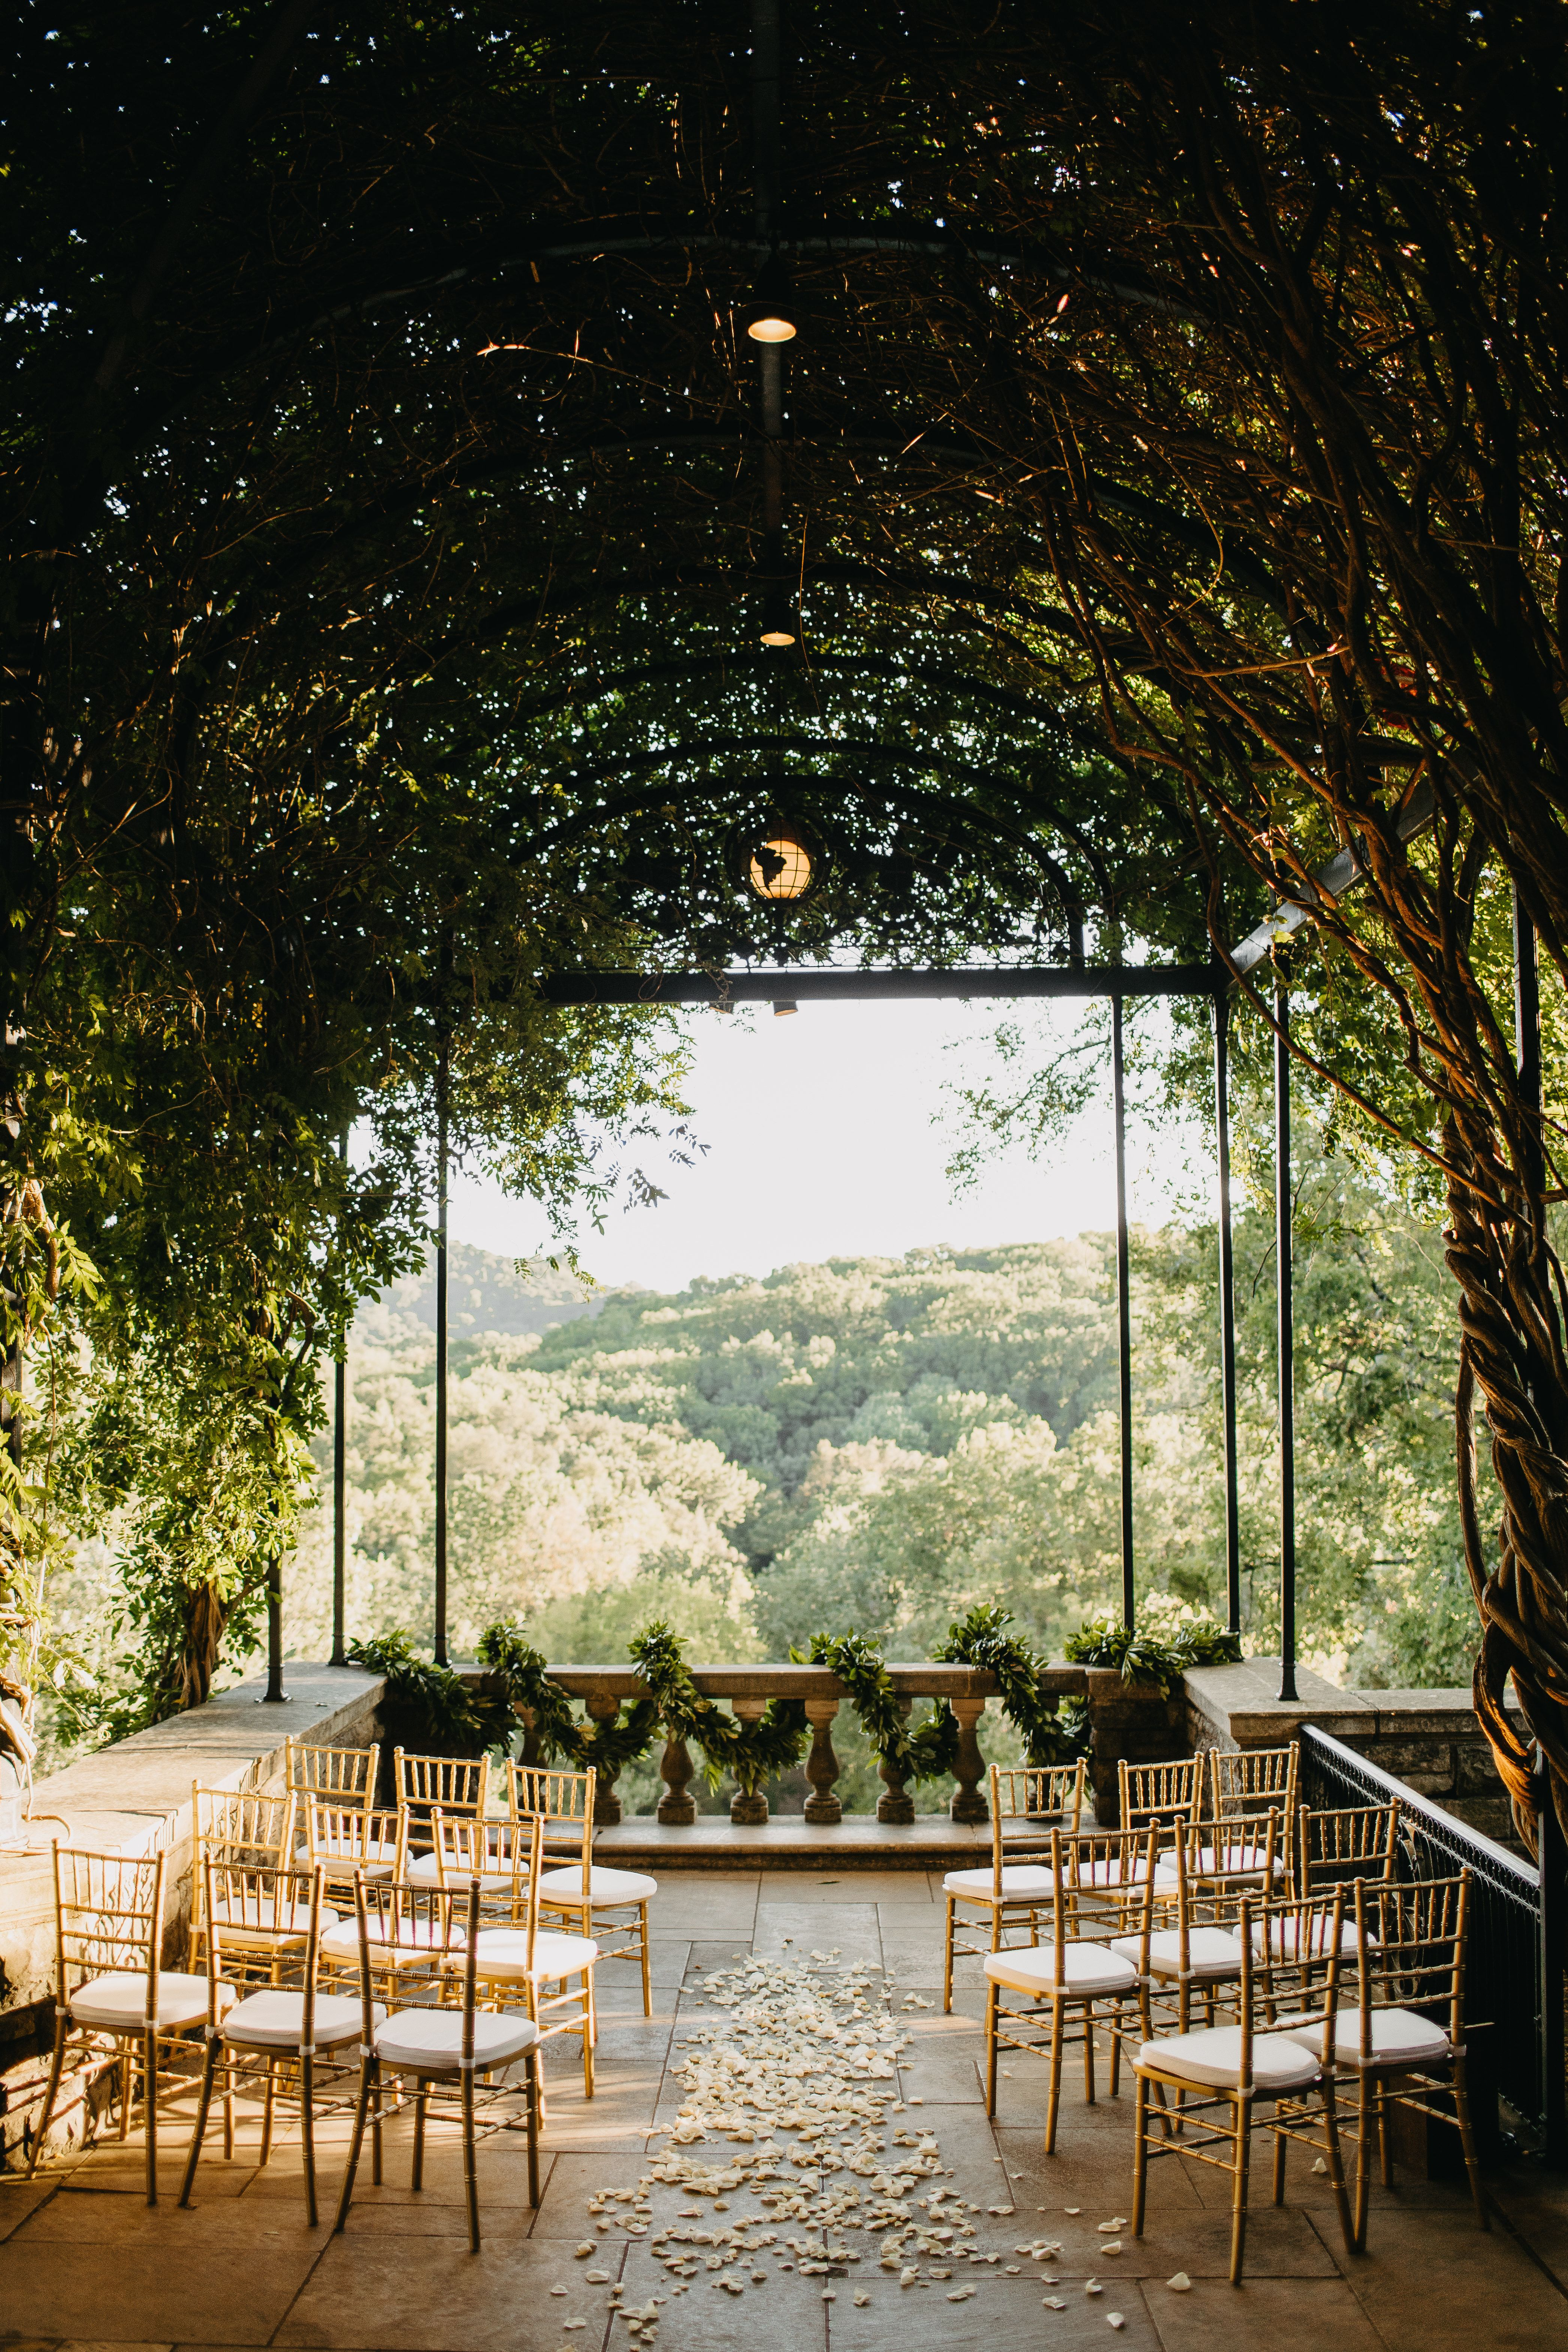 Pin By Paulina Anggraini On Wisteria Arbor Ceremony Reception September Nashville Wedding Venues Outdoor Wedding Venues Tennessee Wedding Venues